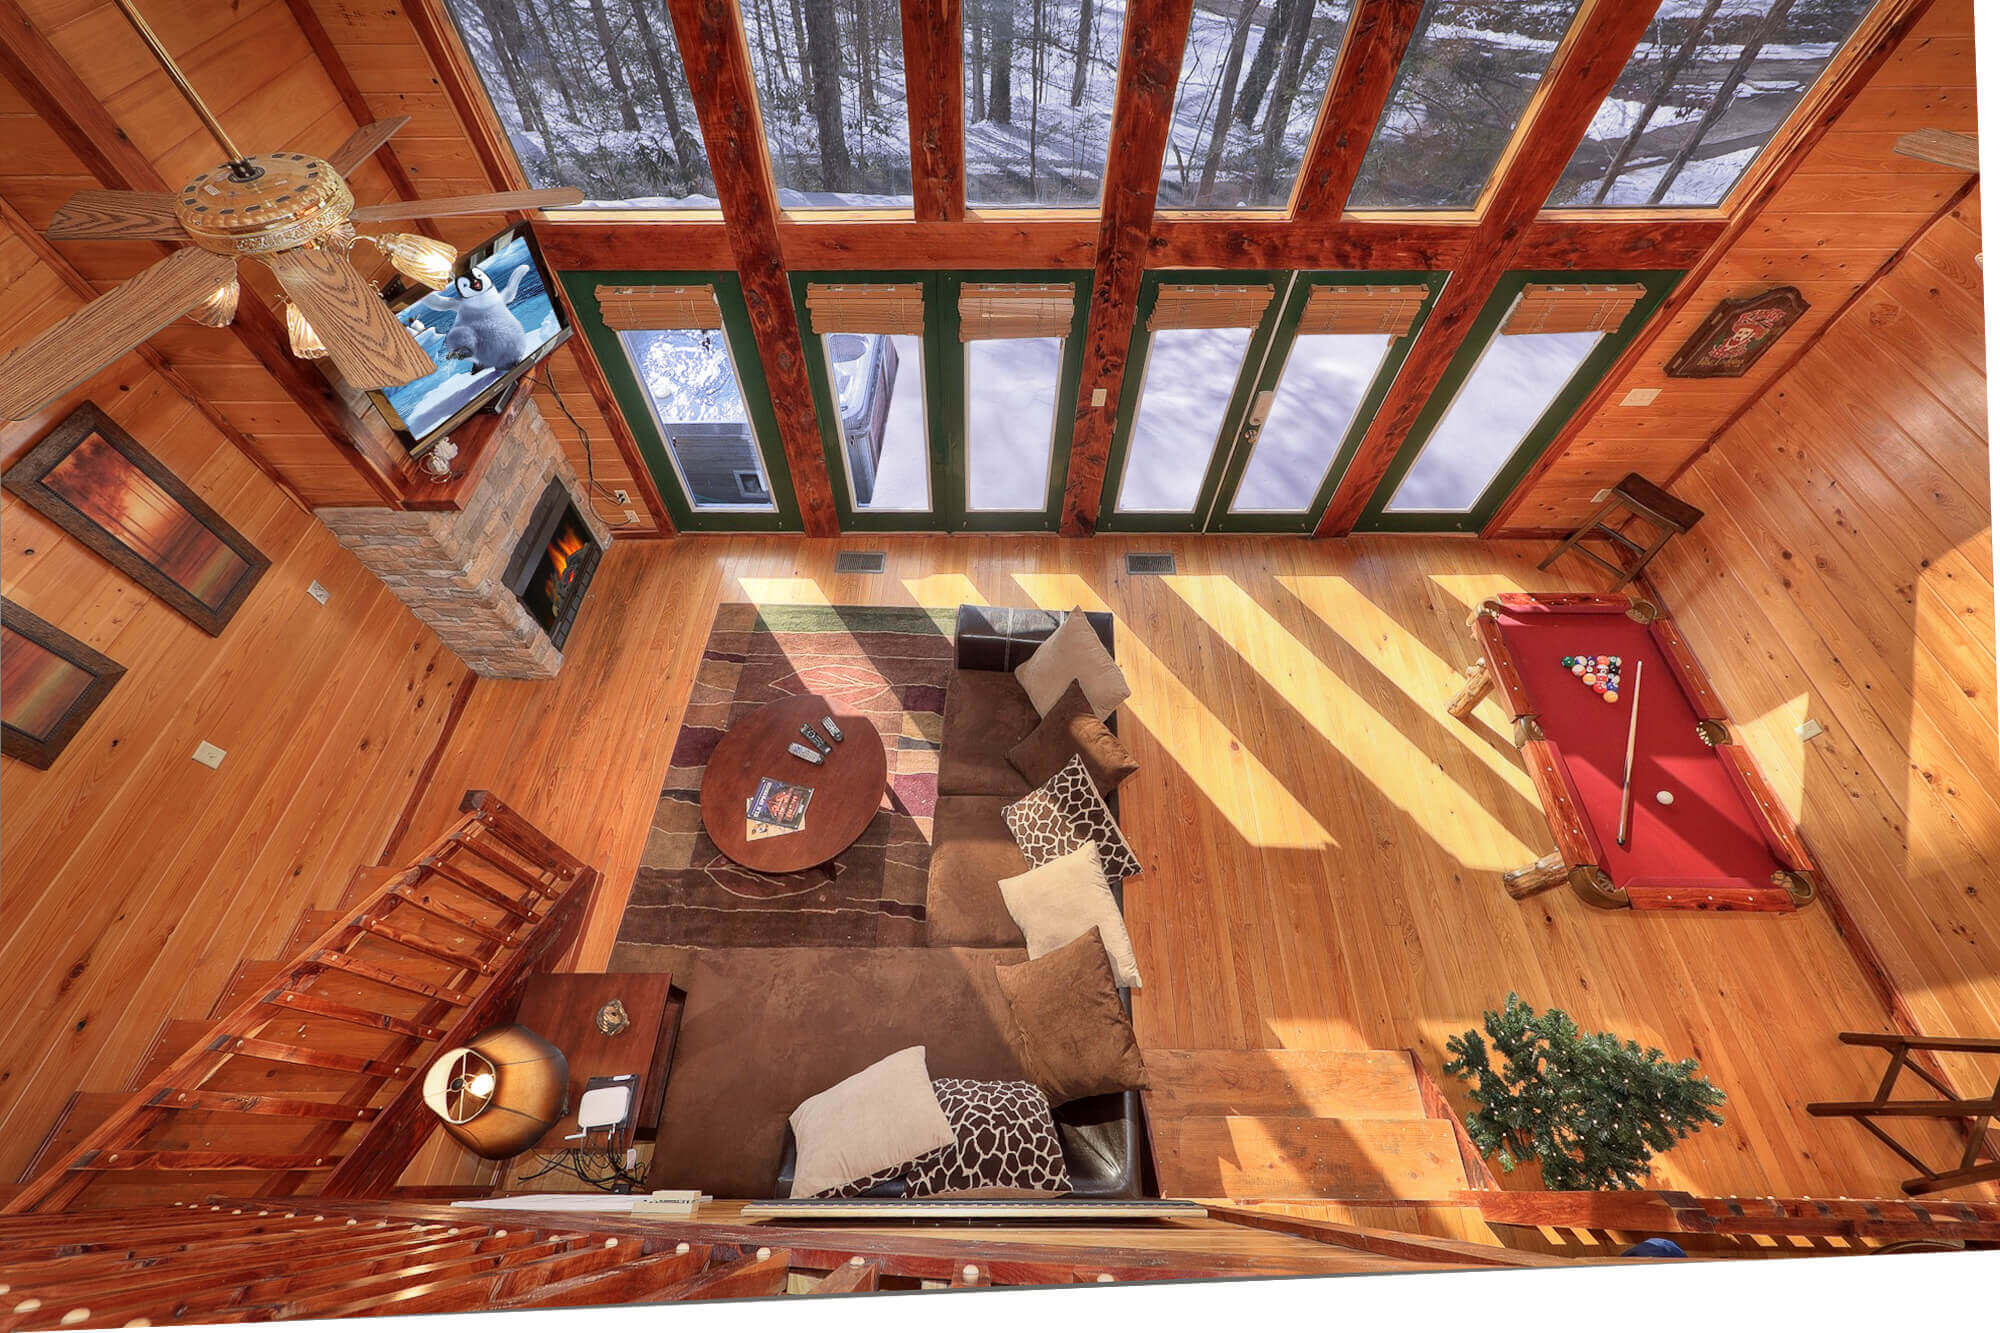 cabins cabin campgrounds koa great mountains the detail cherokee smoky foothills rentals set of in